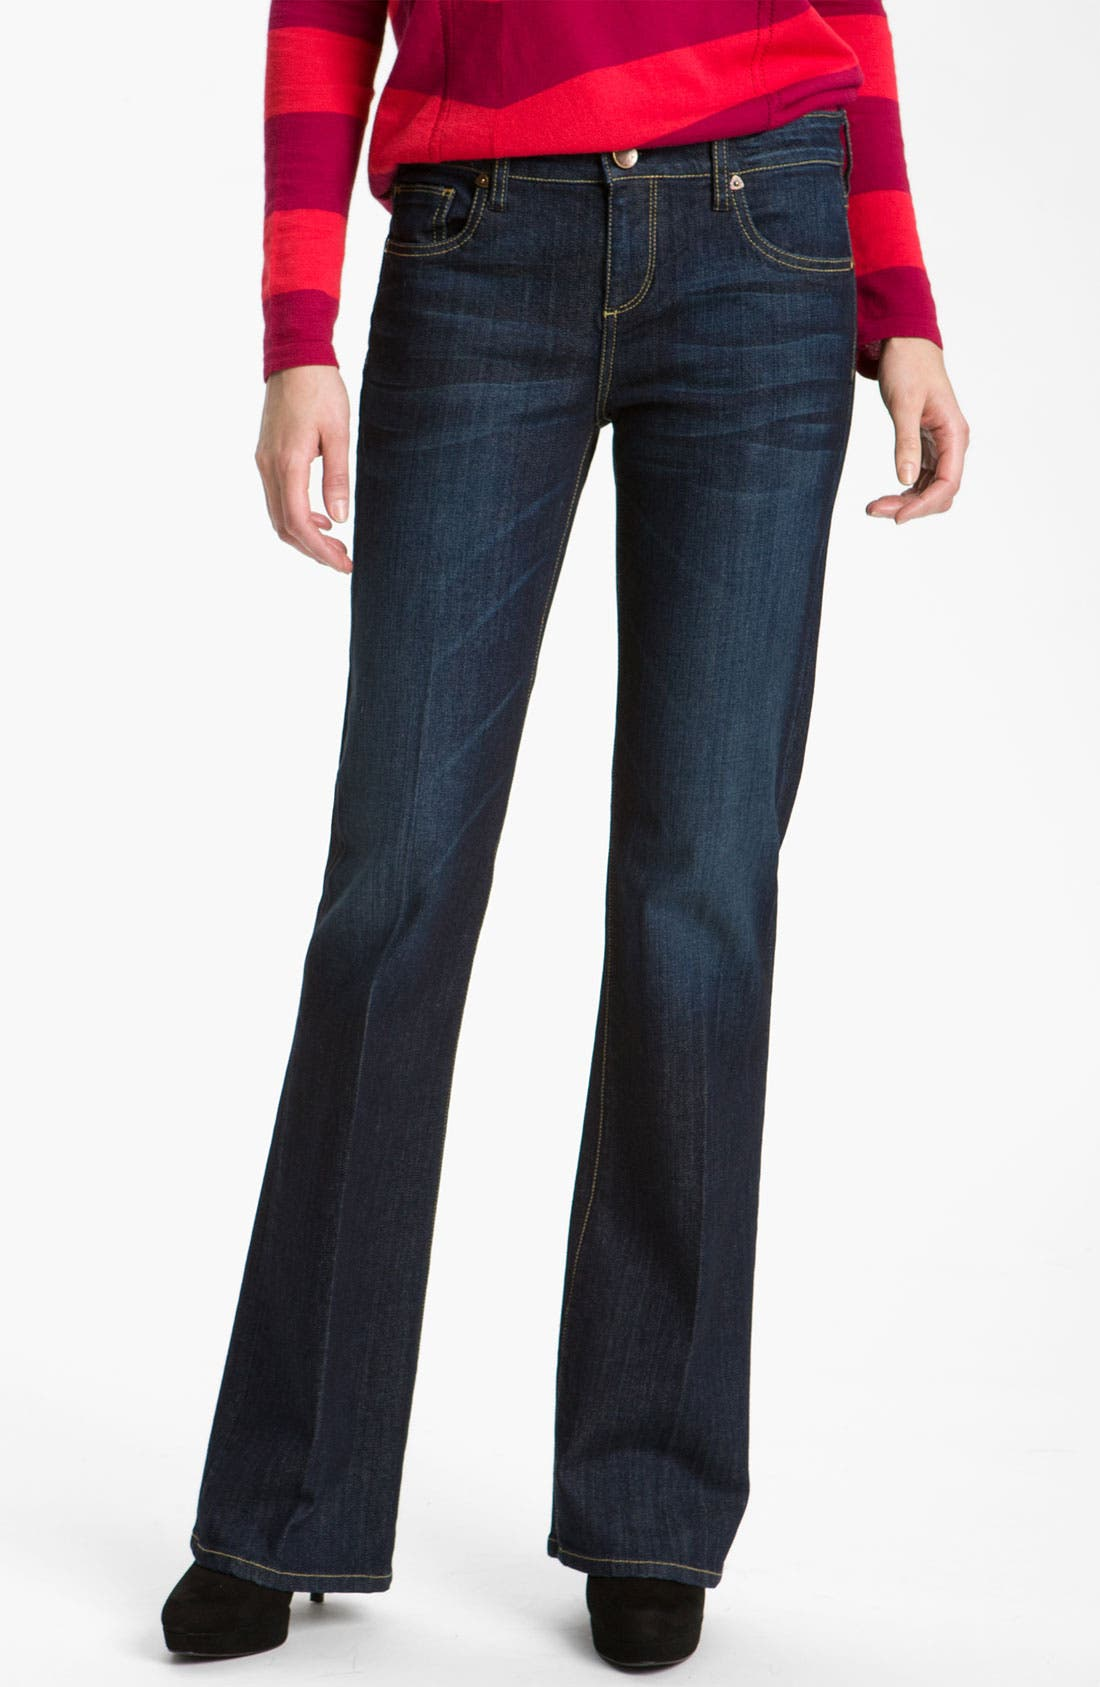 Alternate Image 1 Selected - KUT from the Kloth Baby Bootcut Jeans (Whim Wash)